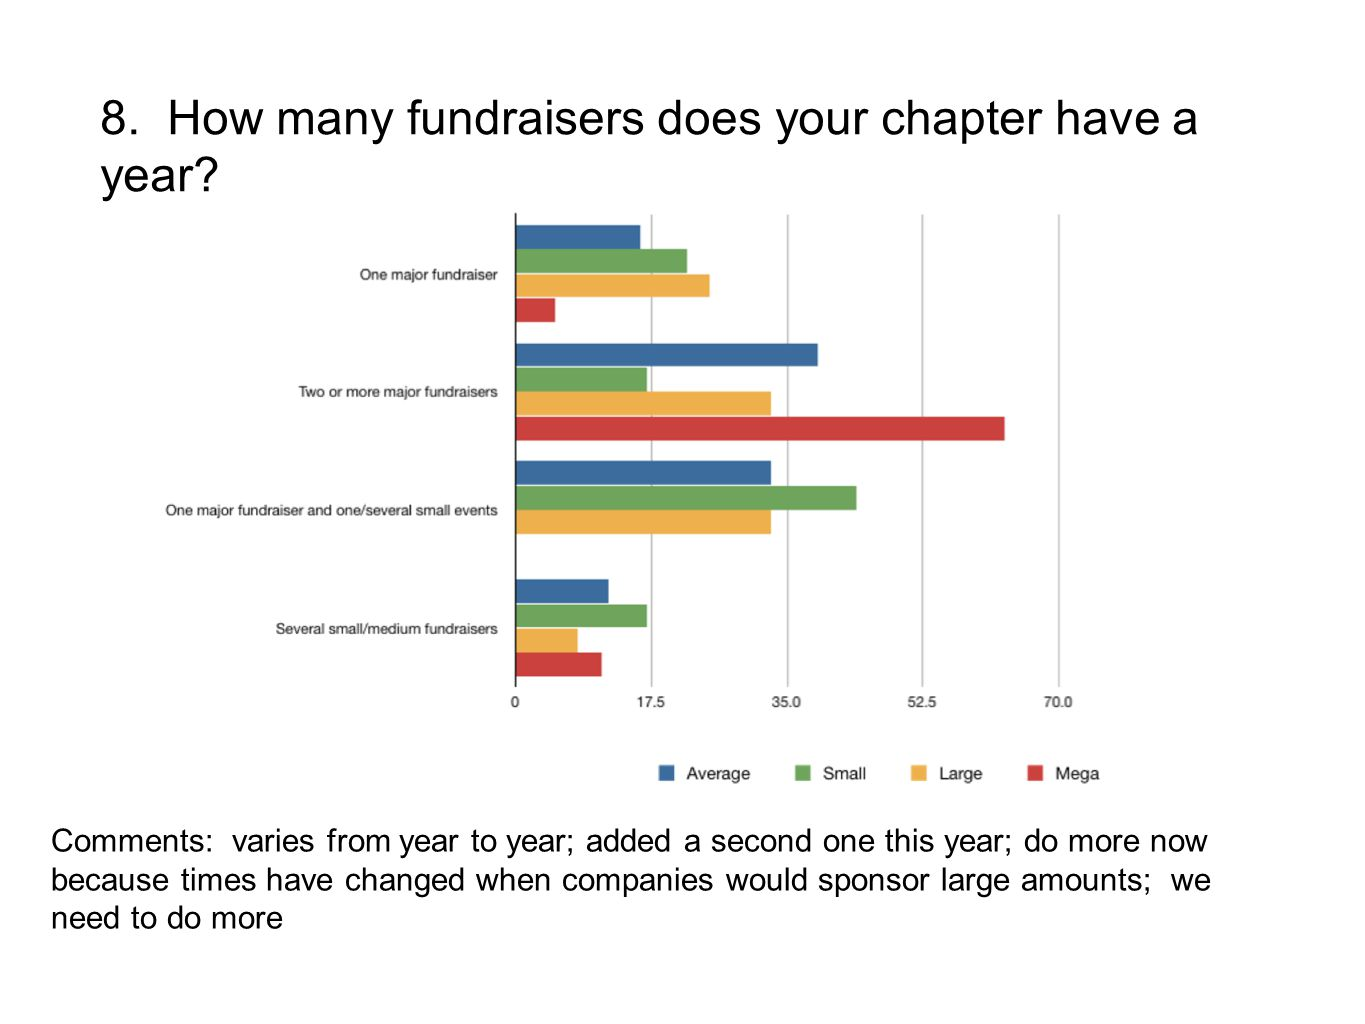 8. How many fundraisers does your chapter have a year.